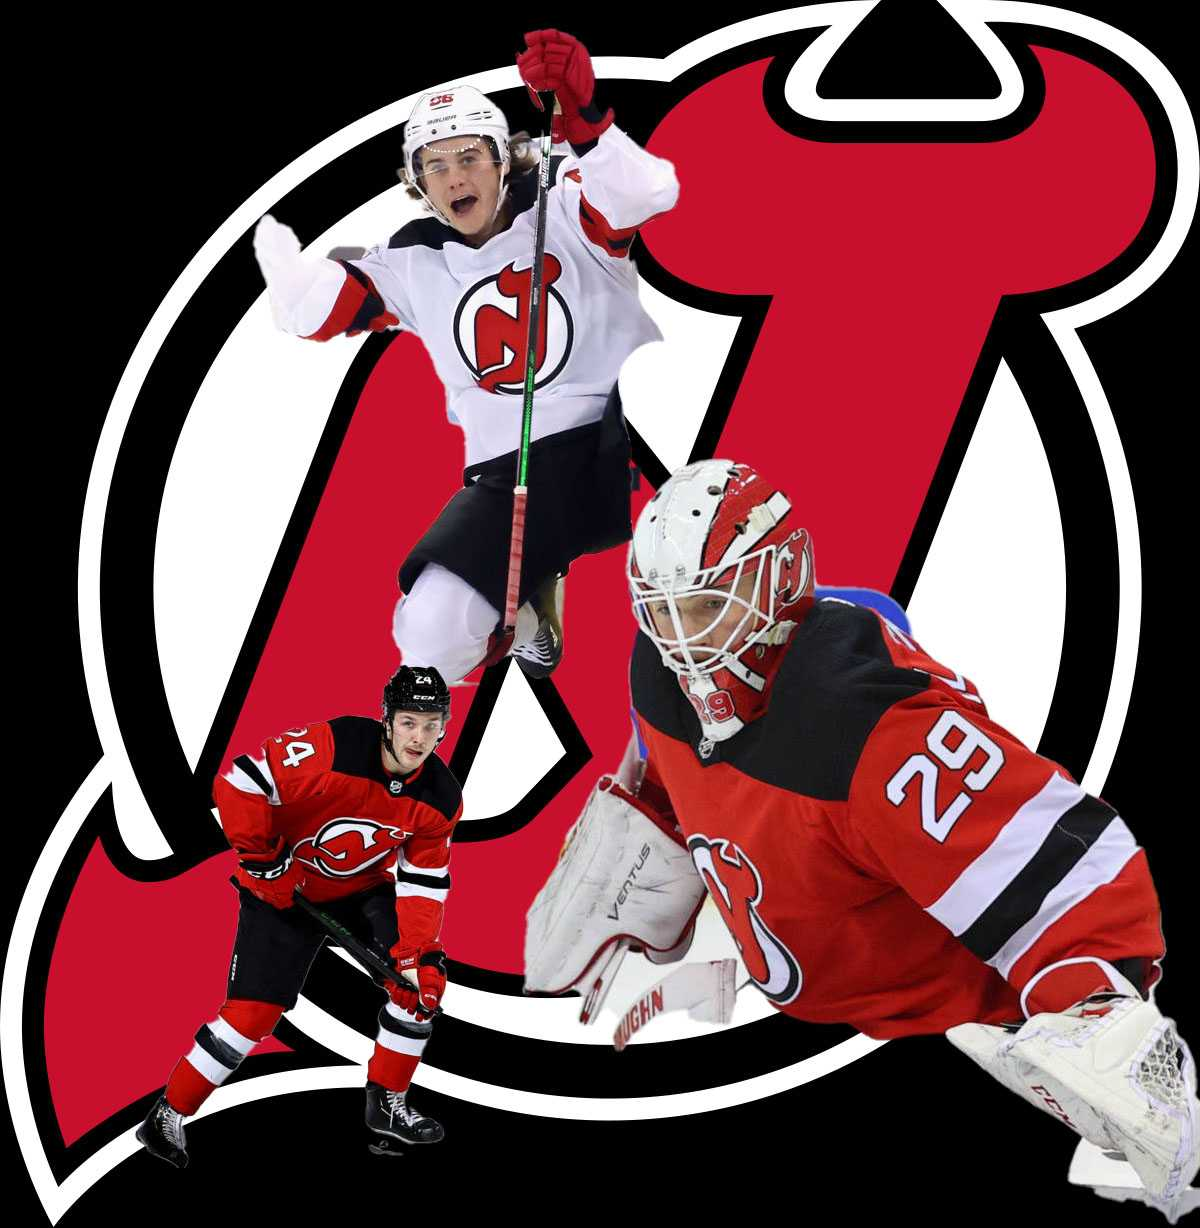 Youth Contributes to New Jersey Devils' Early Success